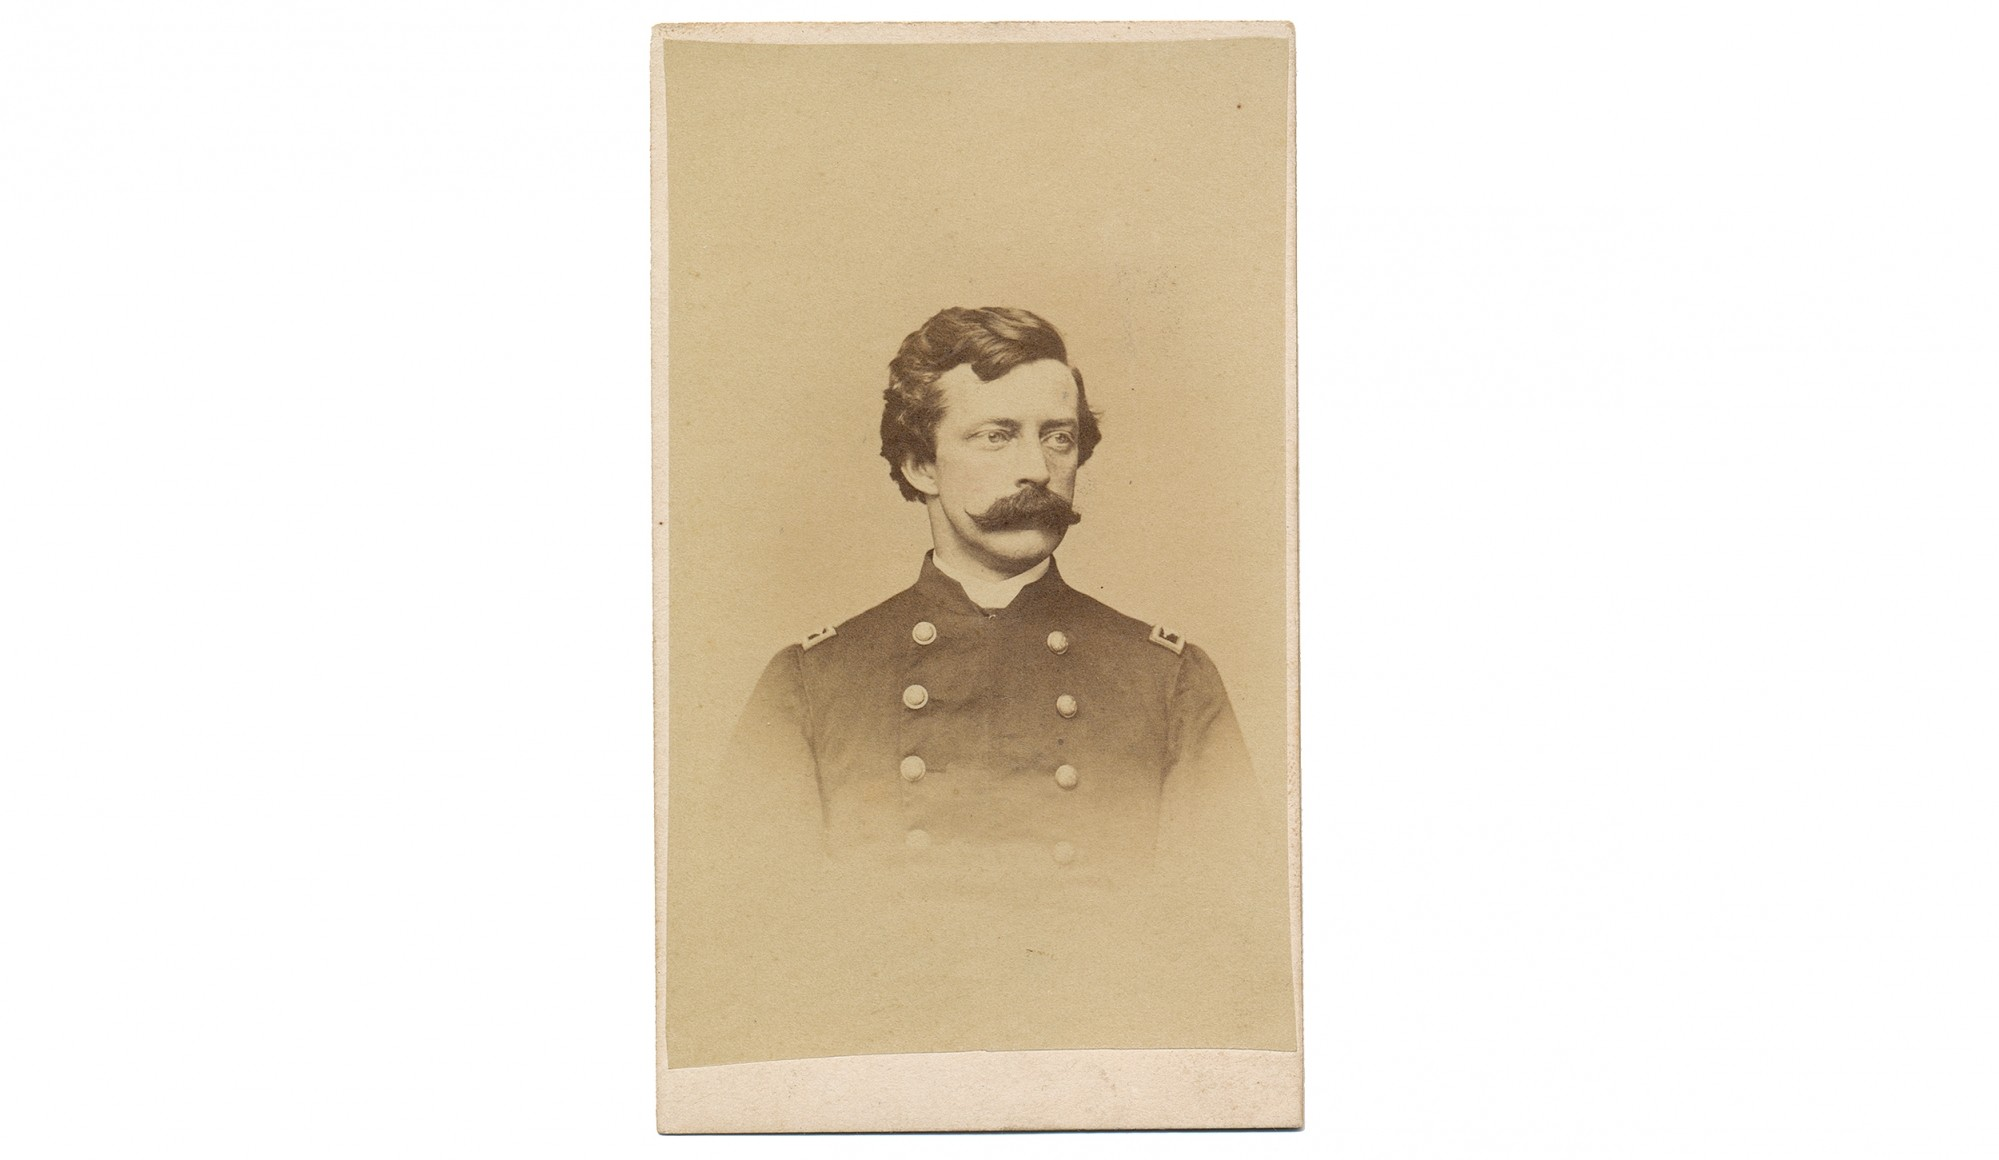 ID'D BUST VIEW OF NEW YORK ARTILLERY OFFICER